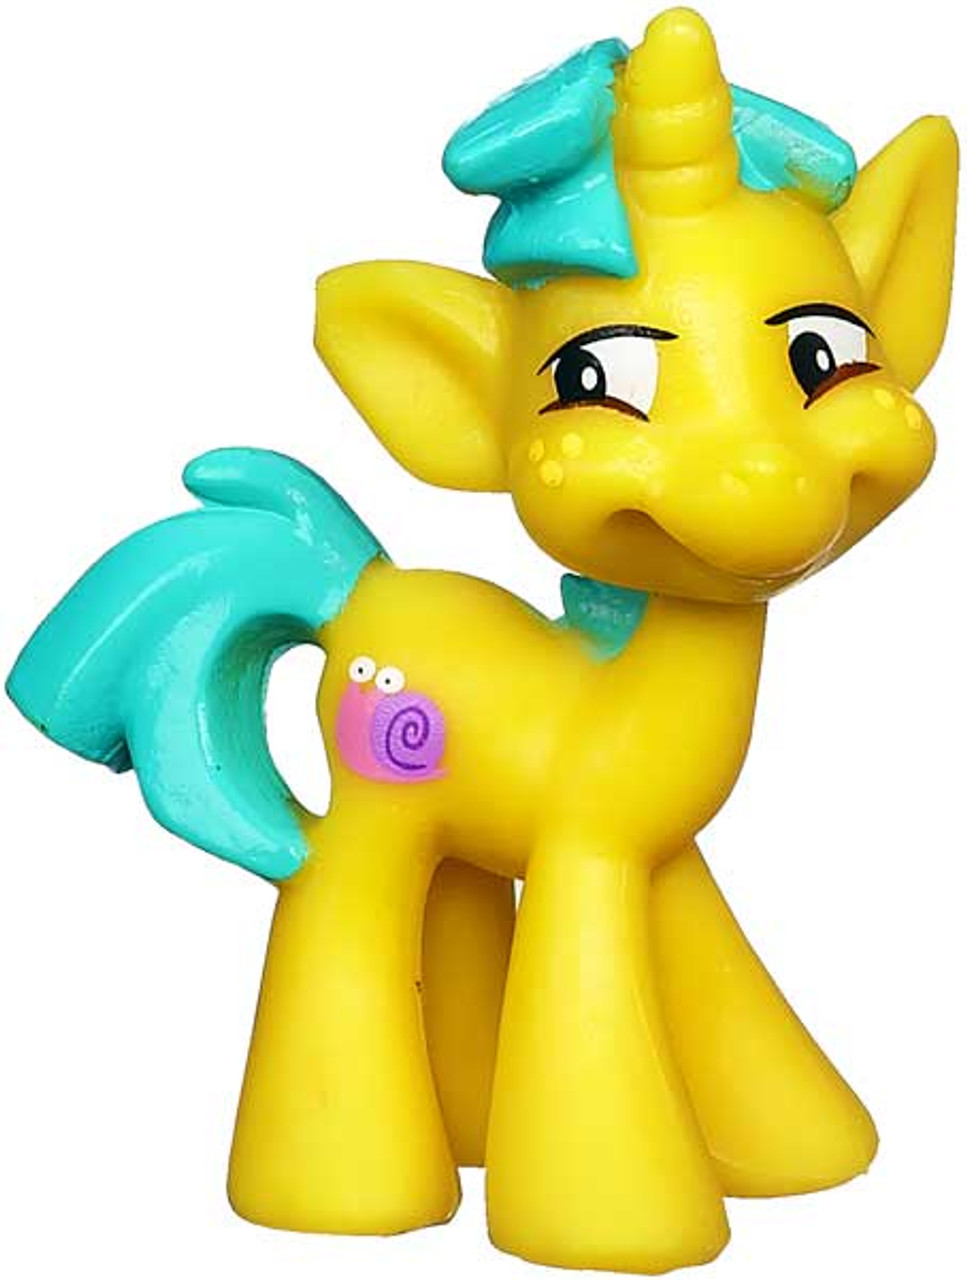 My Little Pony Friendship is Magic 2 Inch Snailsquirm PVC Figure